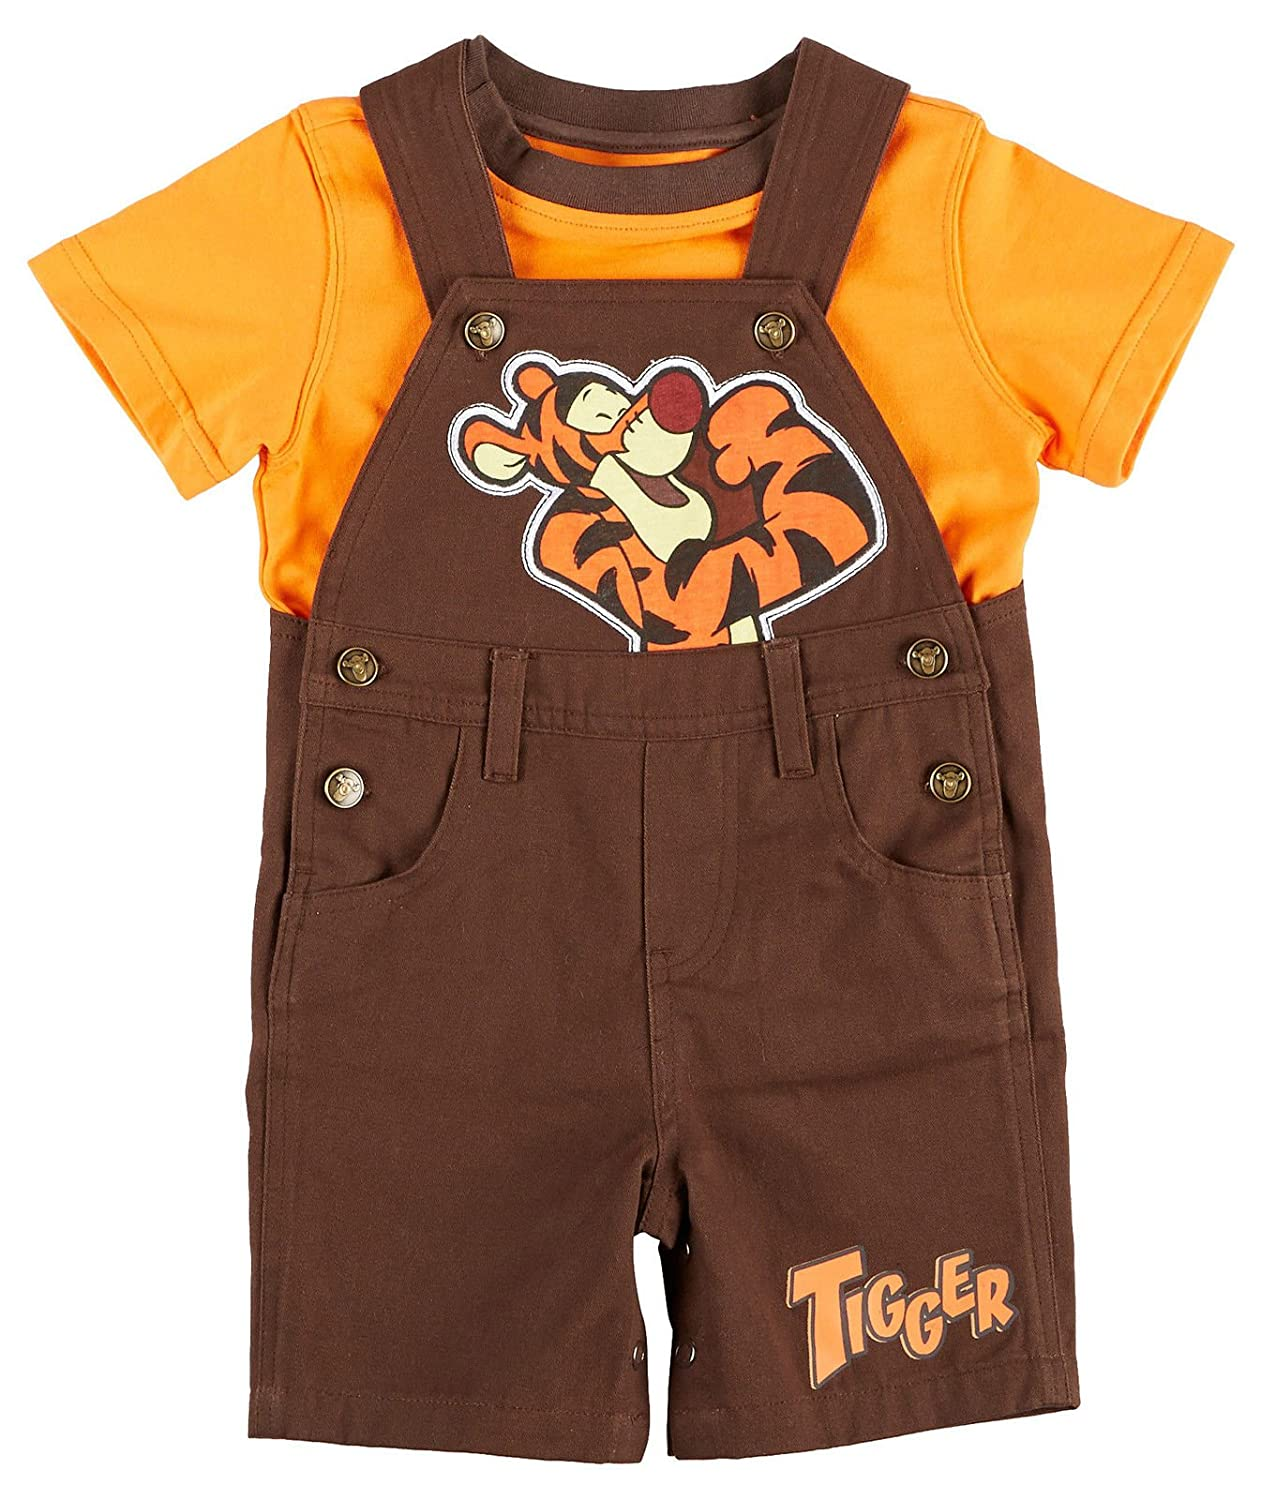 Winnie the Pooh Disney Official and Tigger Boys Infant Shortall Set Sizes 12-24 Months